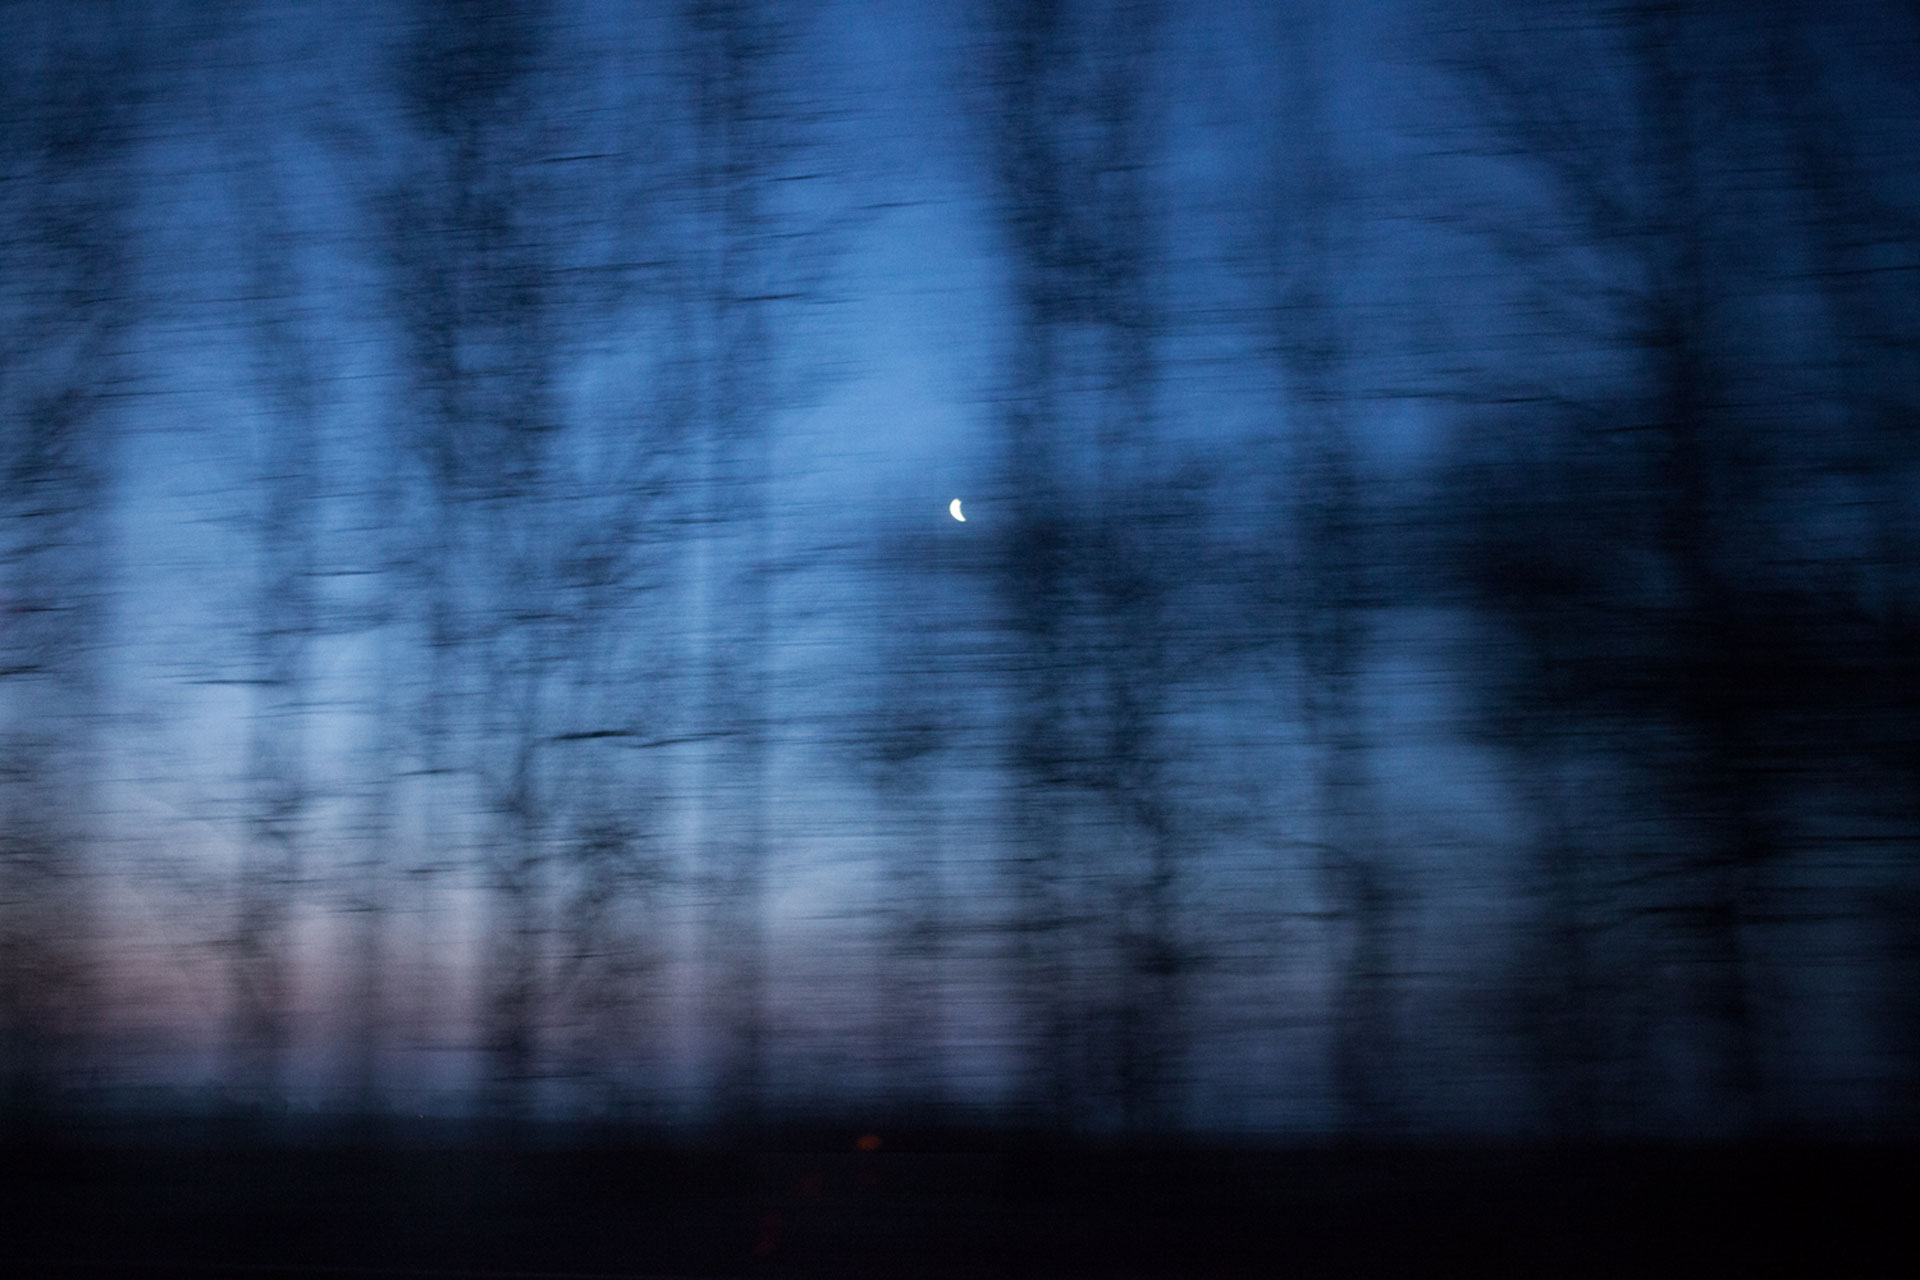 timo-stammberger-photography-fotografie-blue-hour-blurred-treeline-moon-mond-blaue-stunde